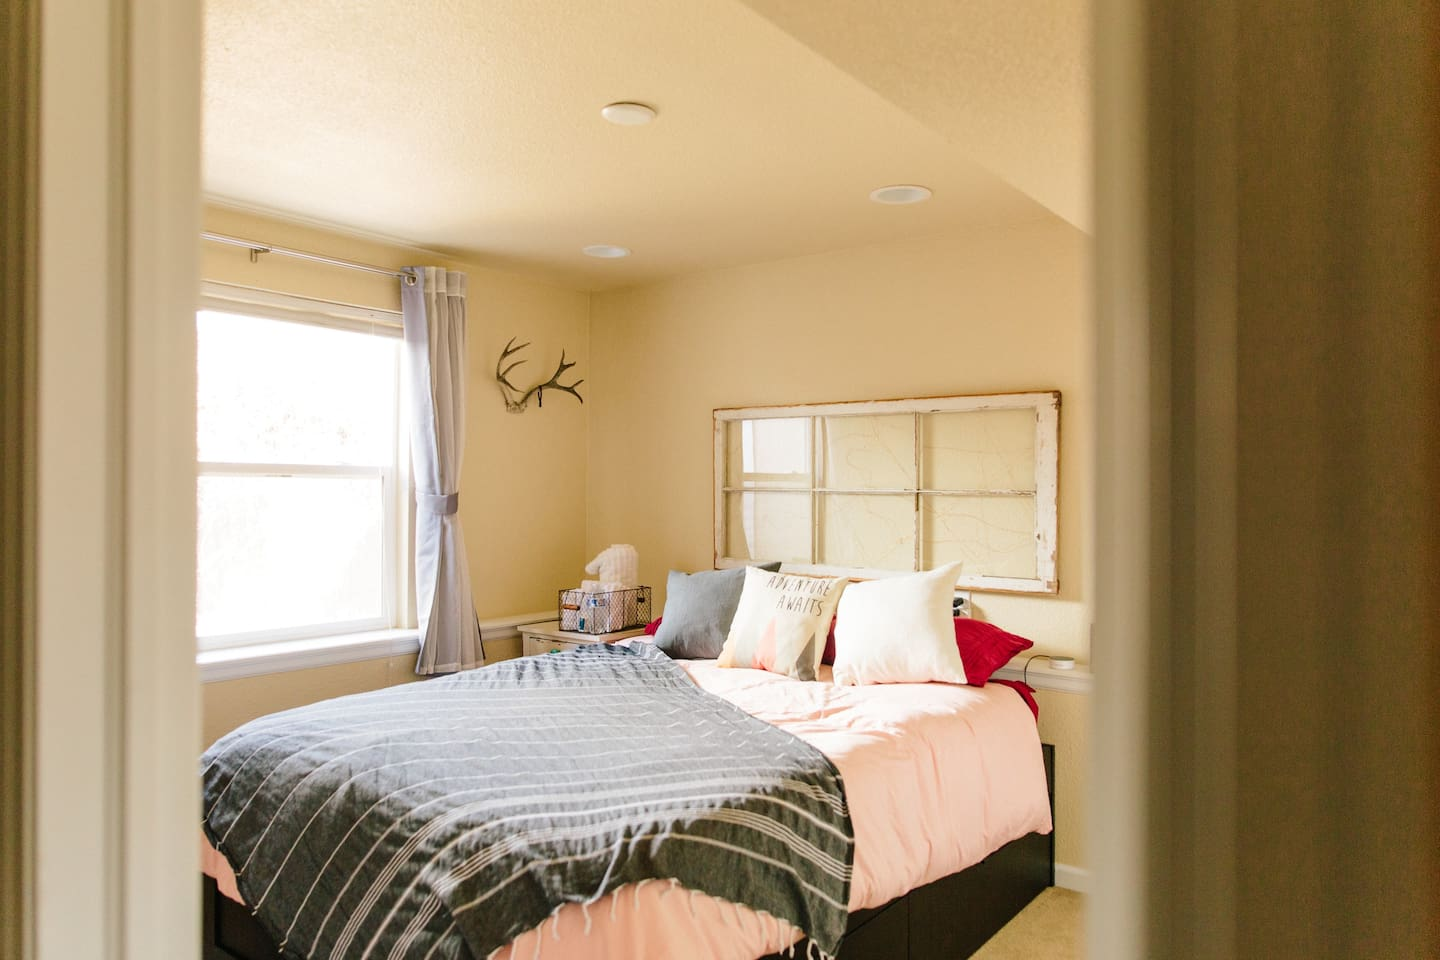 The Colorado Room, queen bed with storage space underneath. This is one of two separate private rooms we offer in our home.